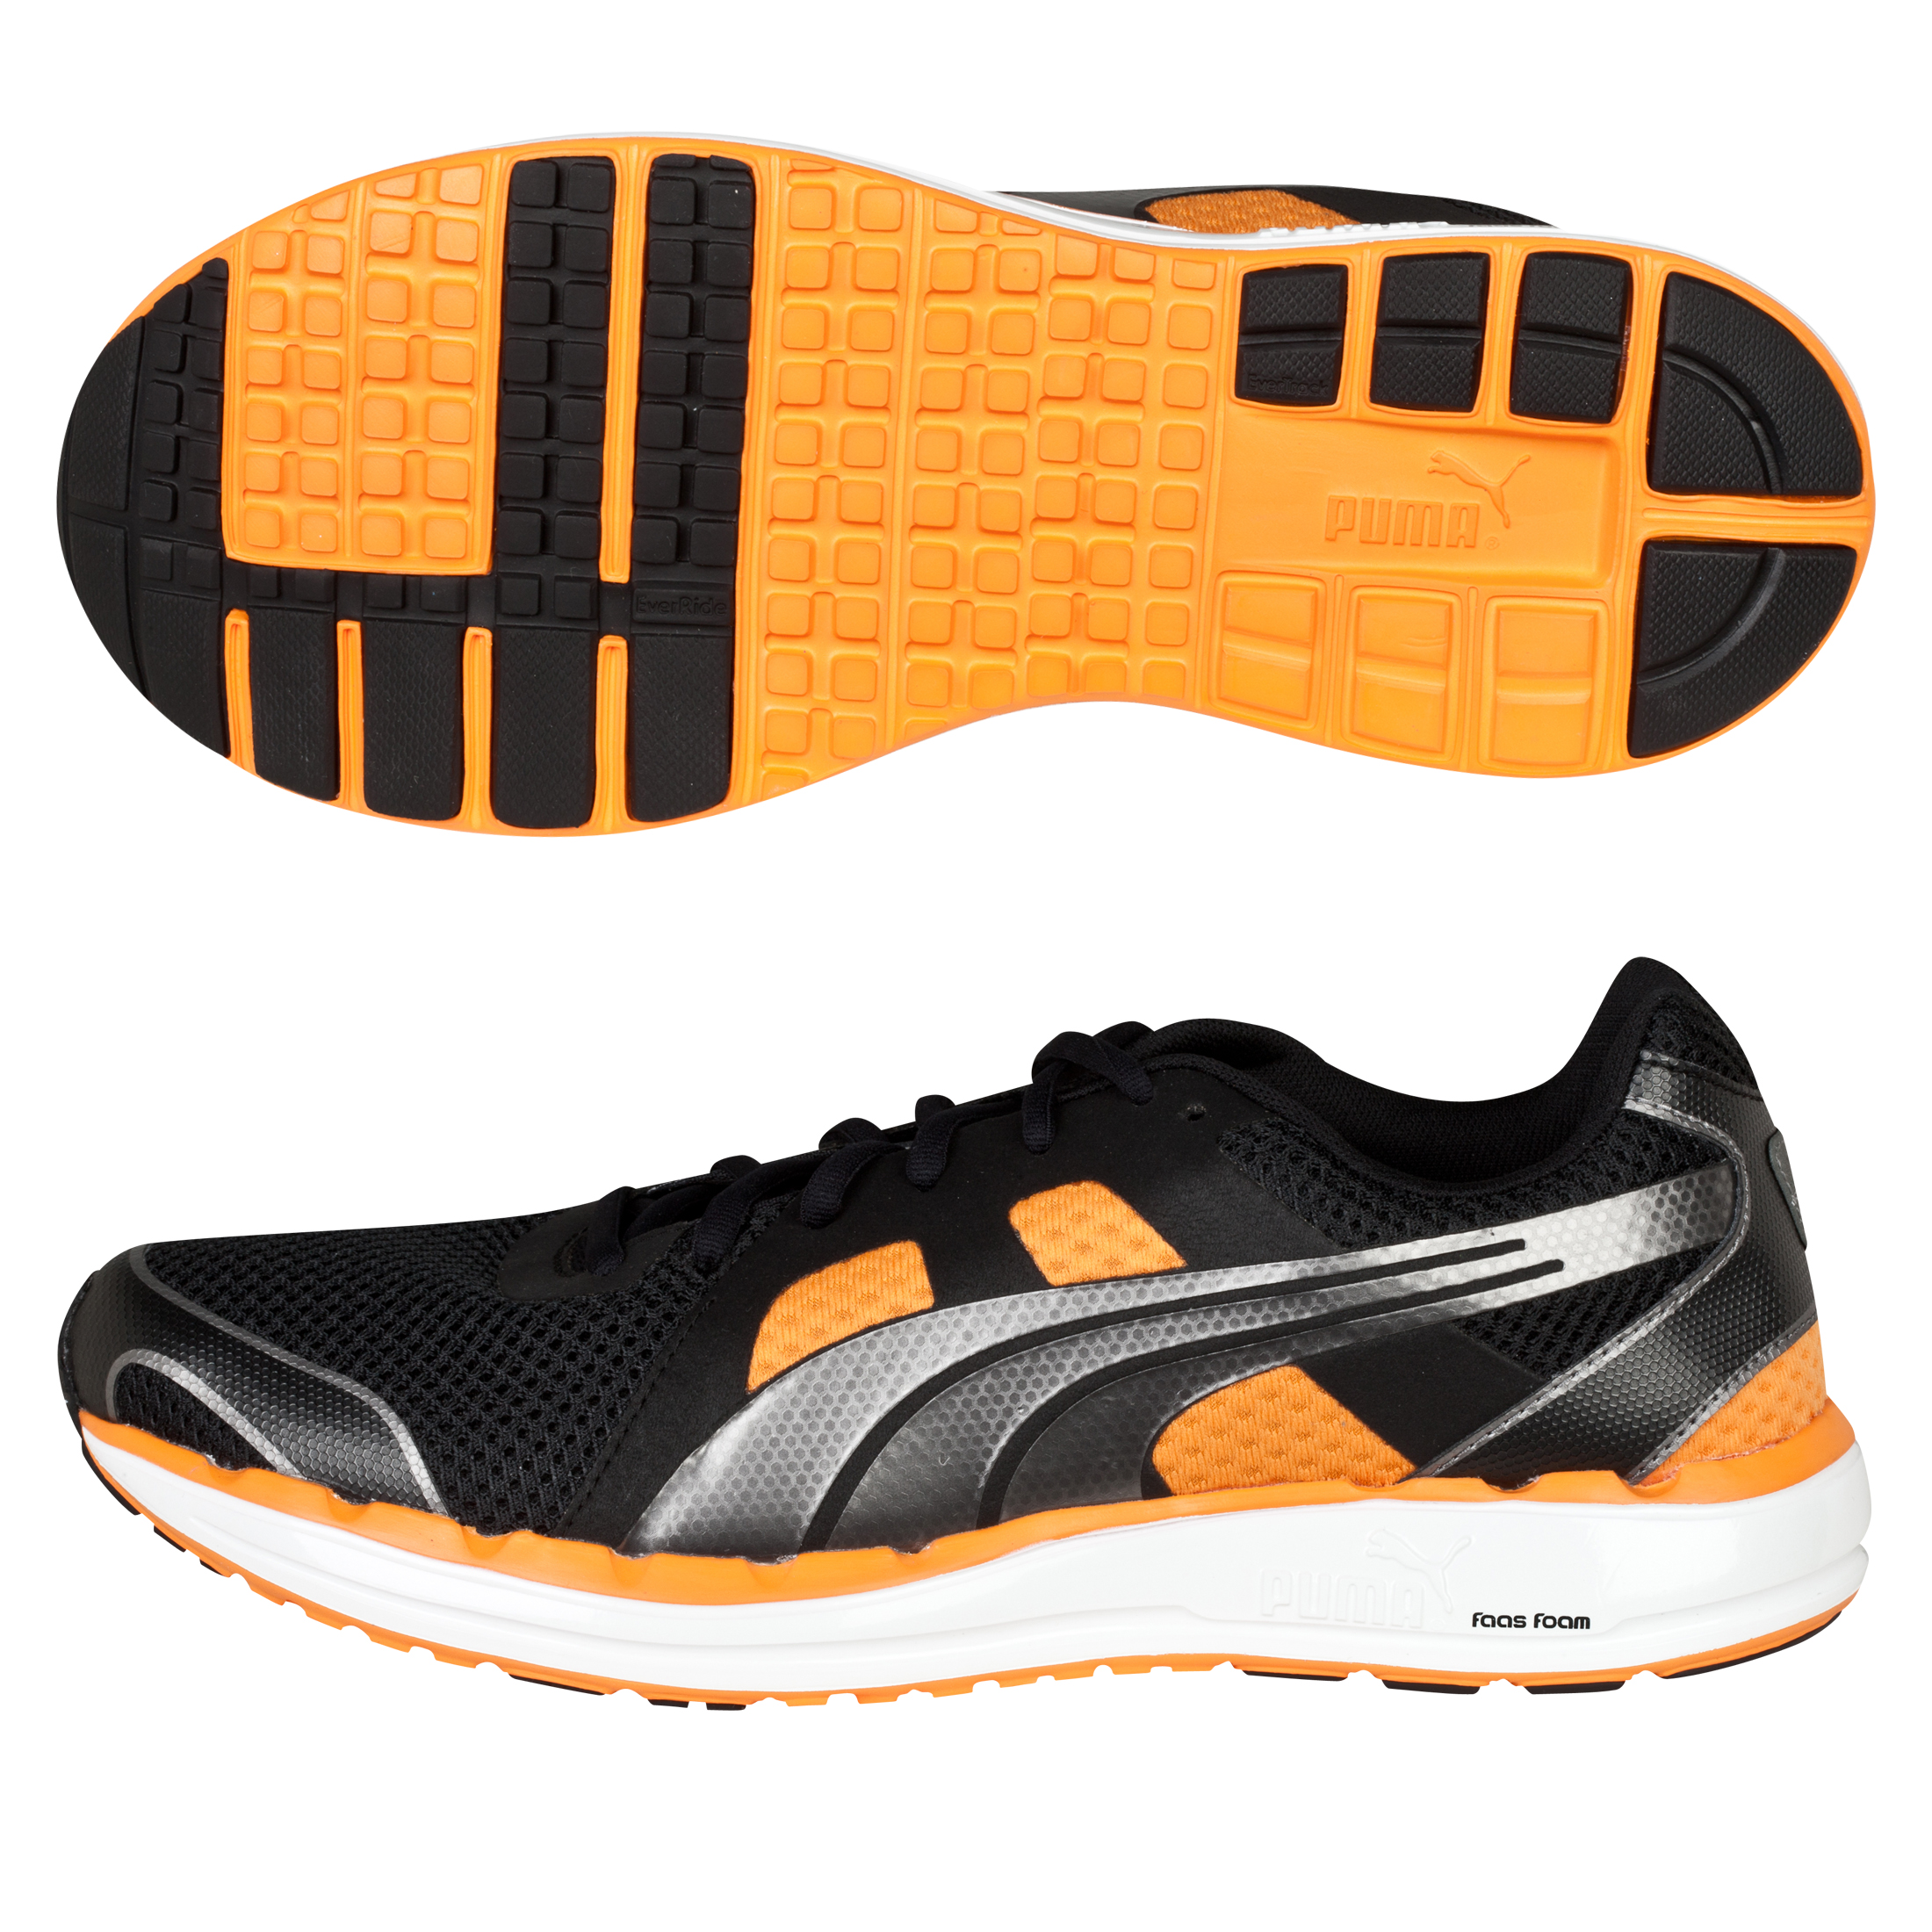 Puma Faas 550 NM Trainers - Black/Aged Silver/Flame Orange